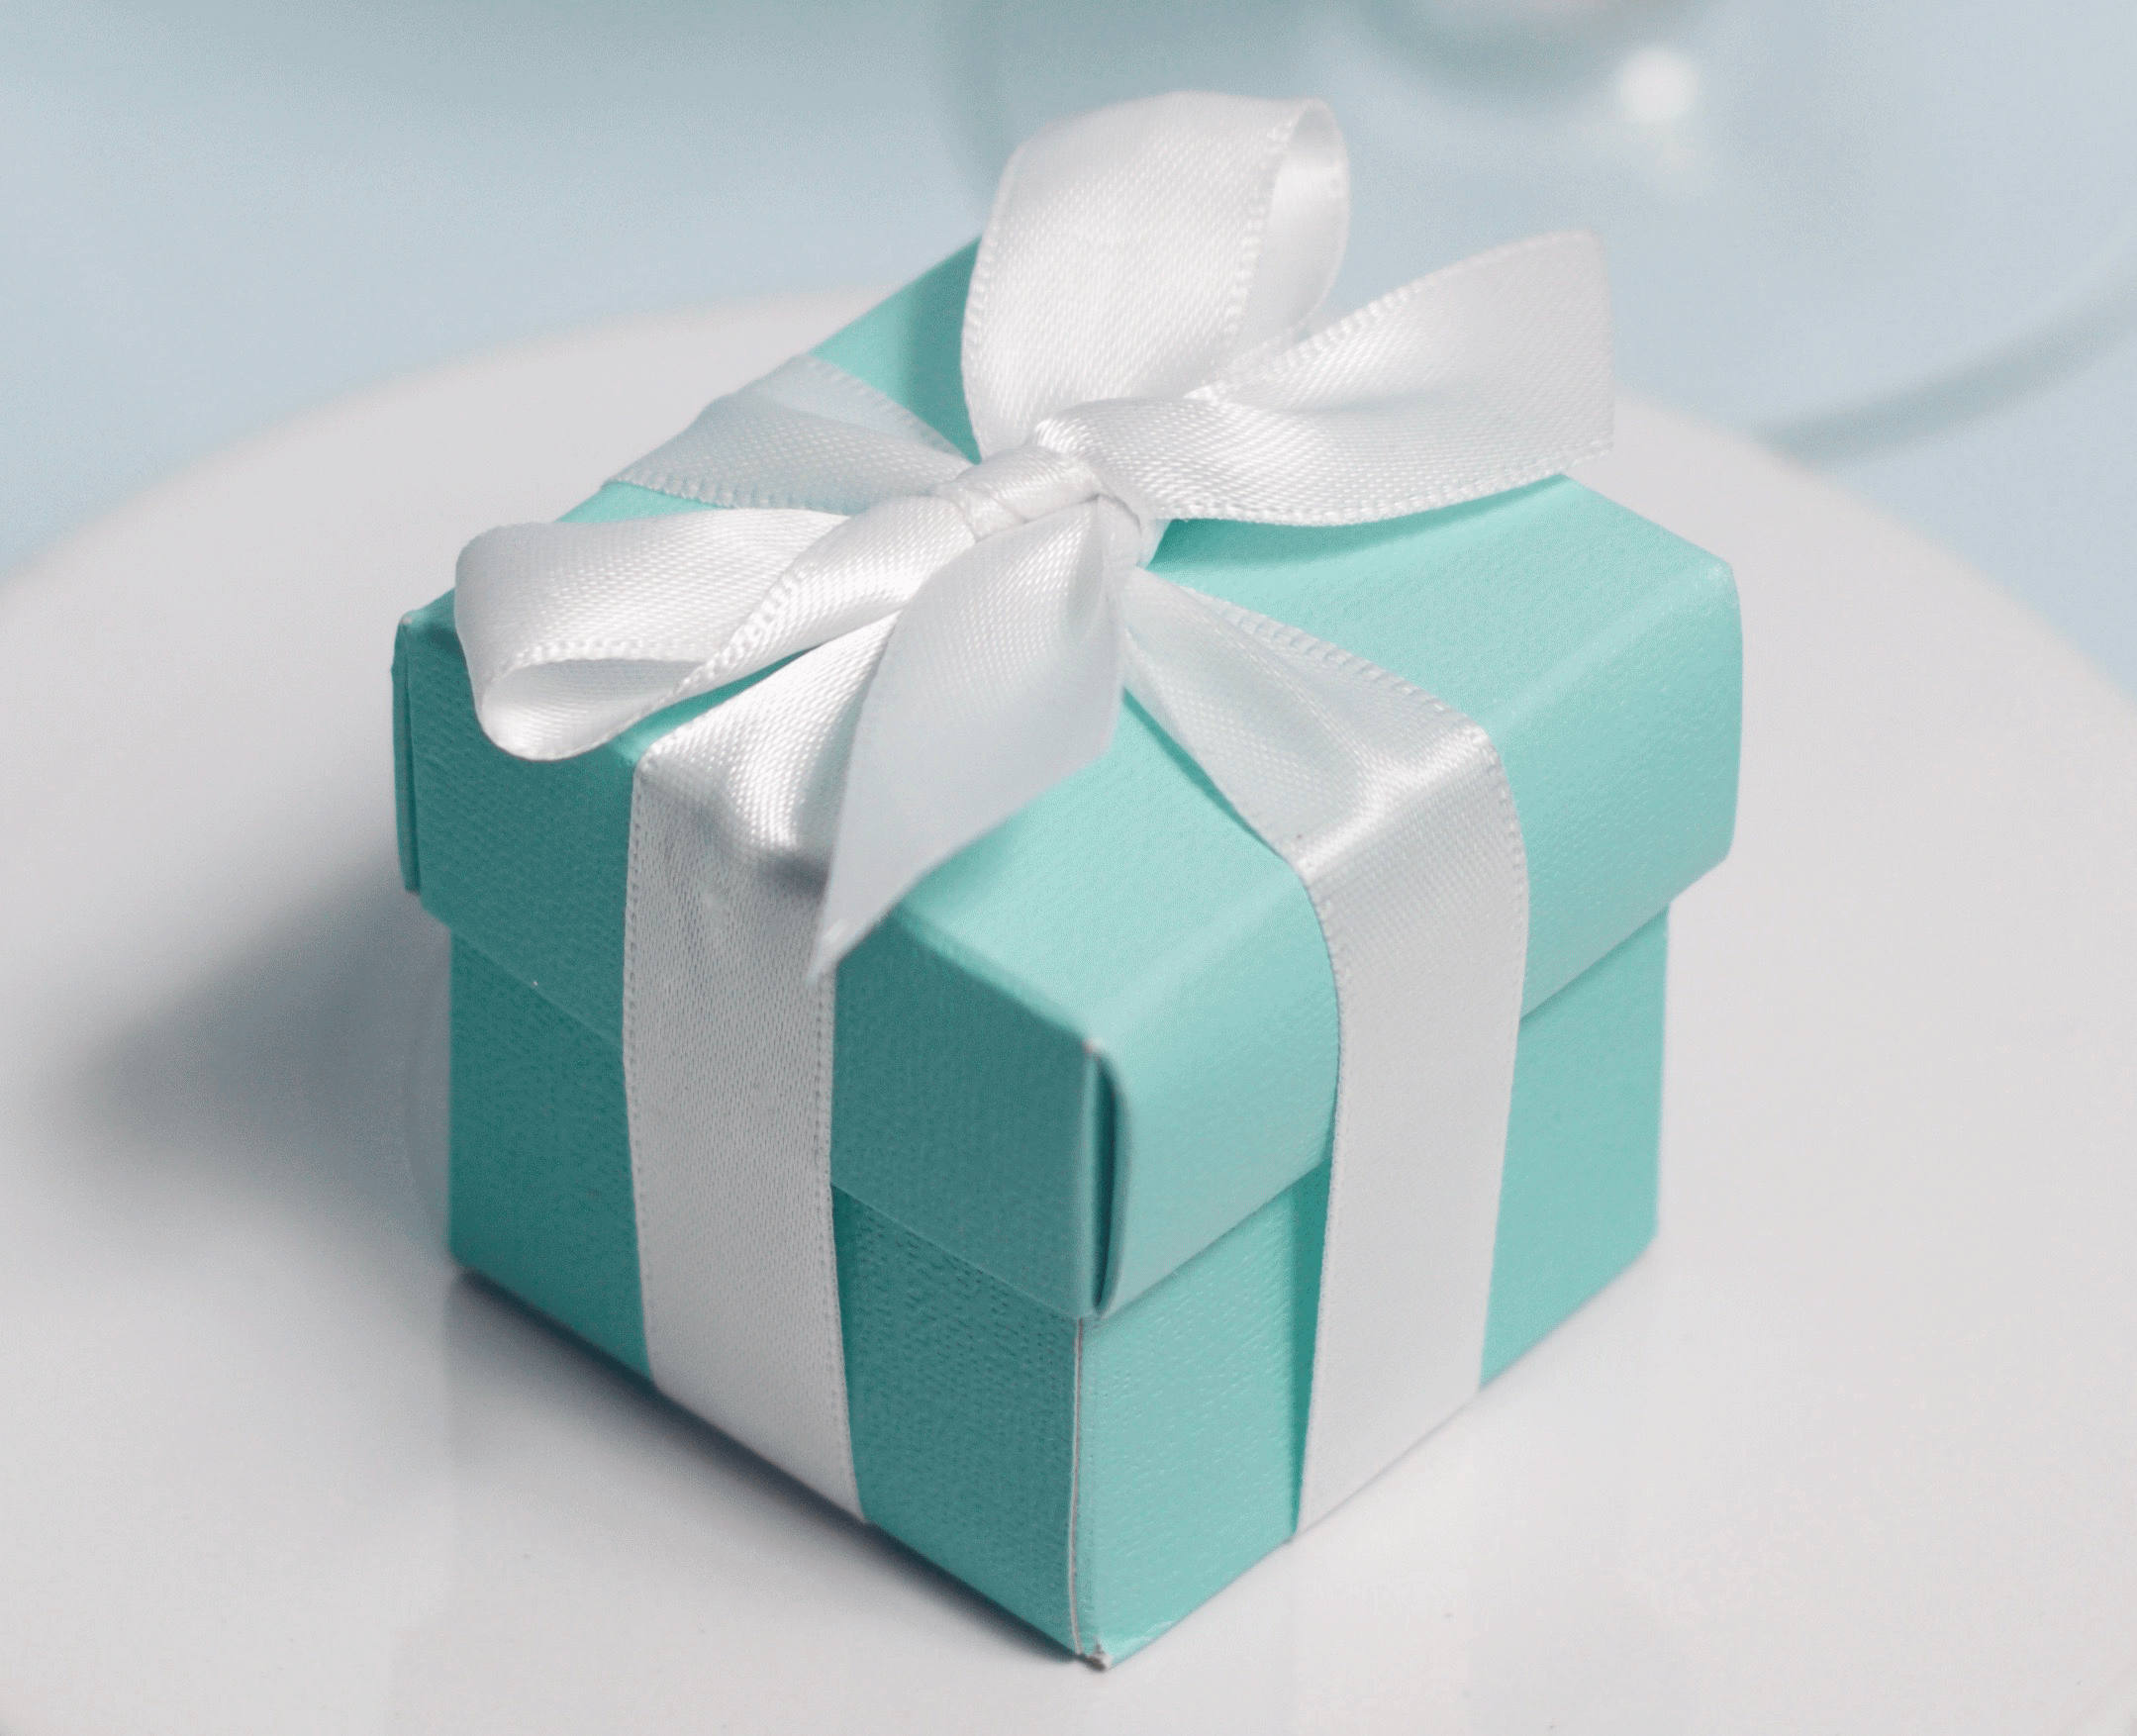 12 Tiffany Style Favor Boxes White Ribbons Included